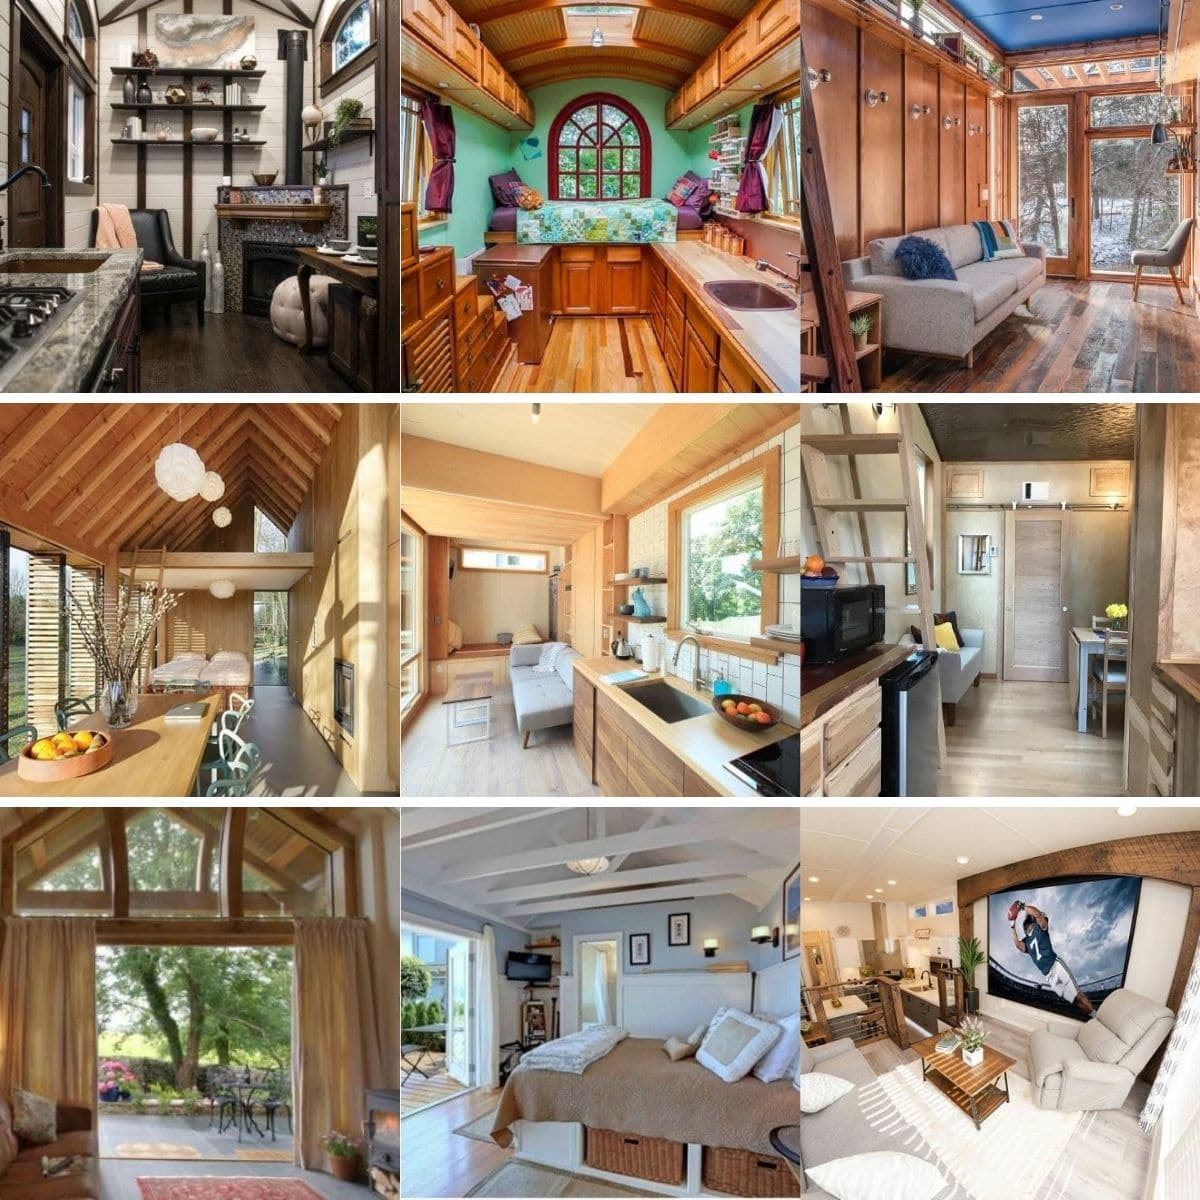 Photo collage featuring different tiny house interiors shown in the list below.